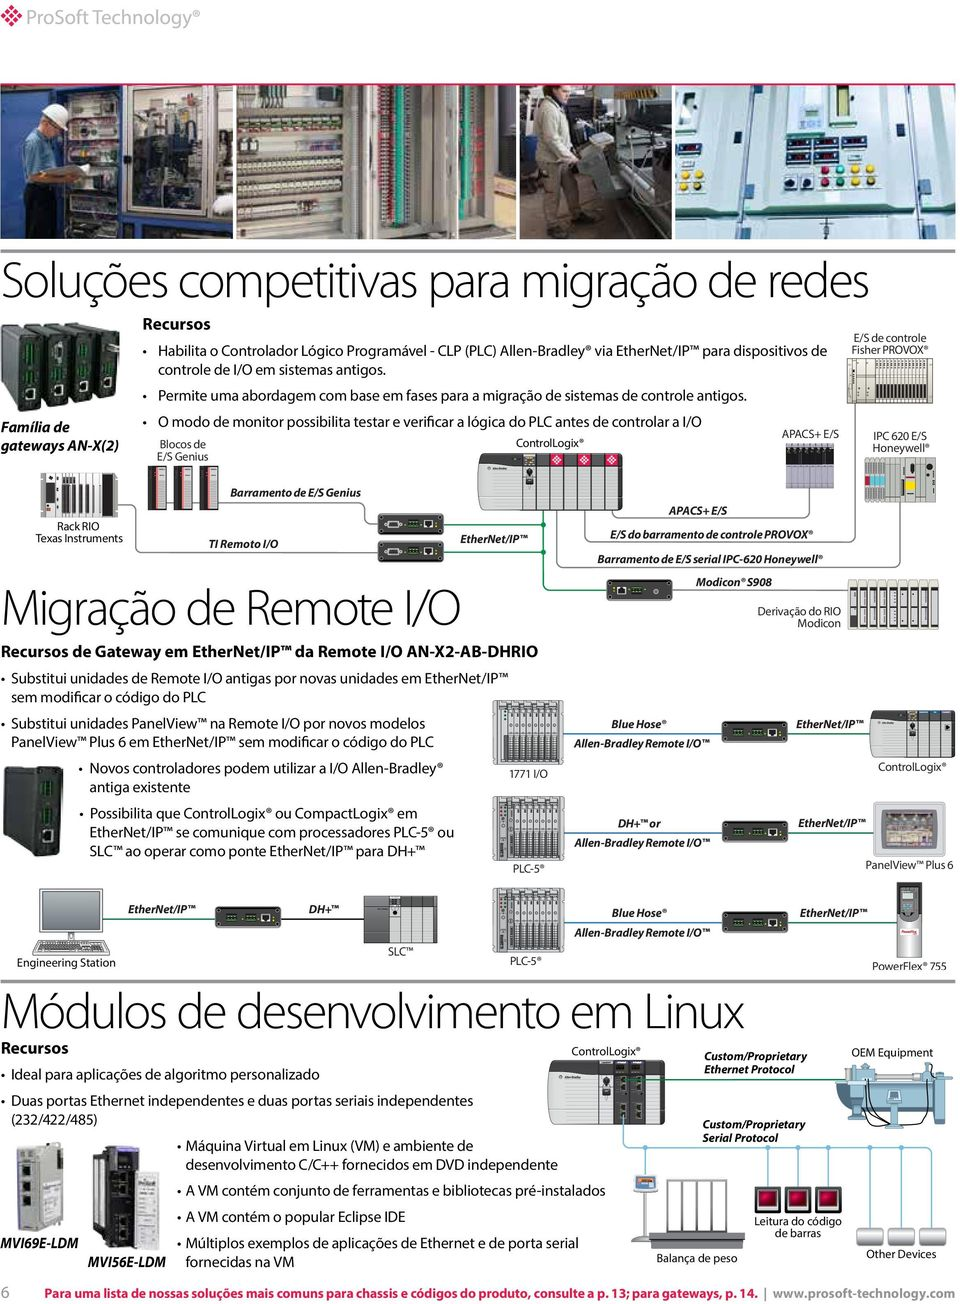 O modo de monitor possibilita testar e verificar a lógica do PLC antes de controlar a Família de gateways AN-X(2) GENIUS GENIUS ACM ACTIVE SECURITY M+ ACTIVE ACM SAM ACM M+ PSM ACTIVE SECURITY ACTIVE